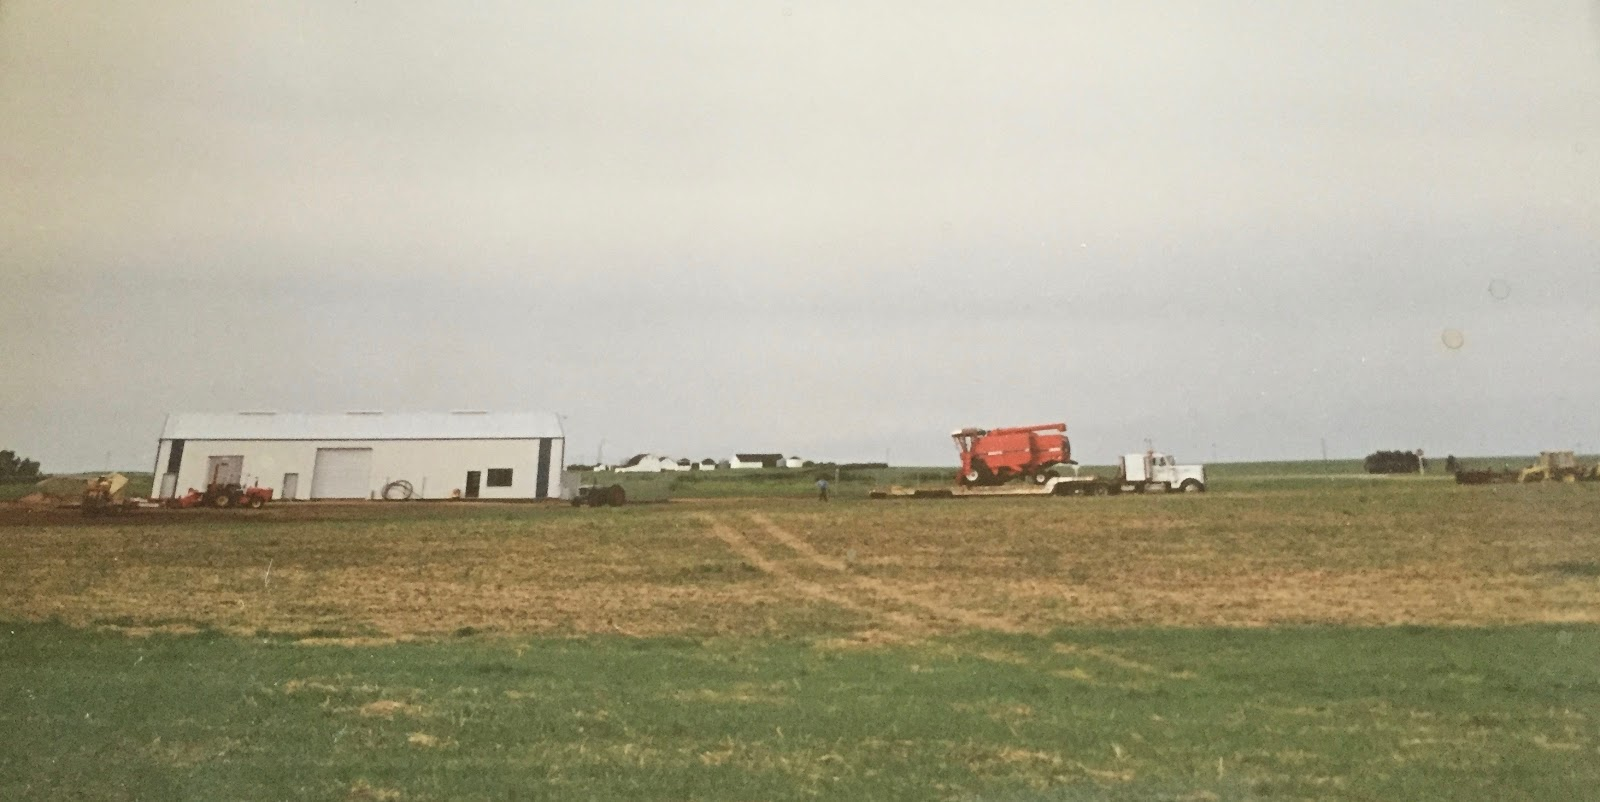 The Elstow/Saskatoon location of Combine World in 1994. A White 8900 combine is being hauled by a white semi into an open field, a tiny human figure directing it. At left, Combine World's main office for many years, Building #1